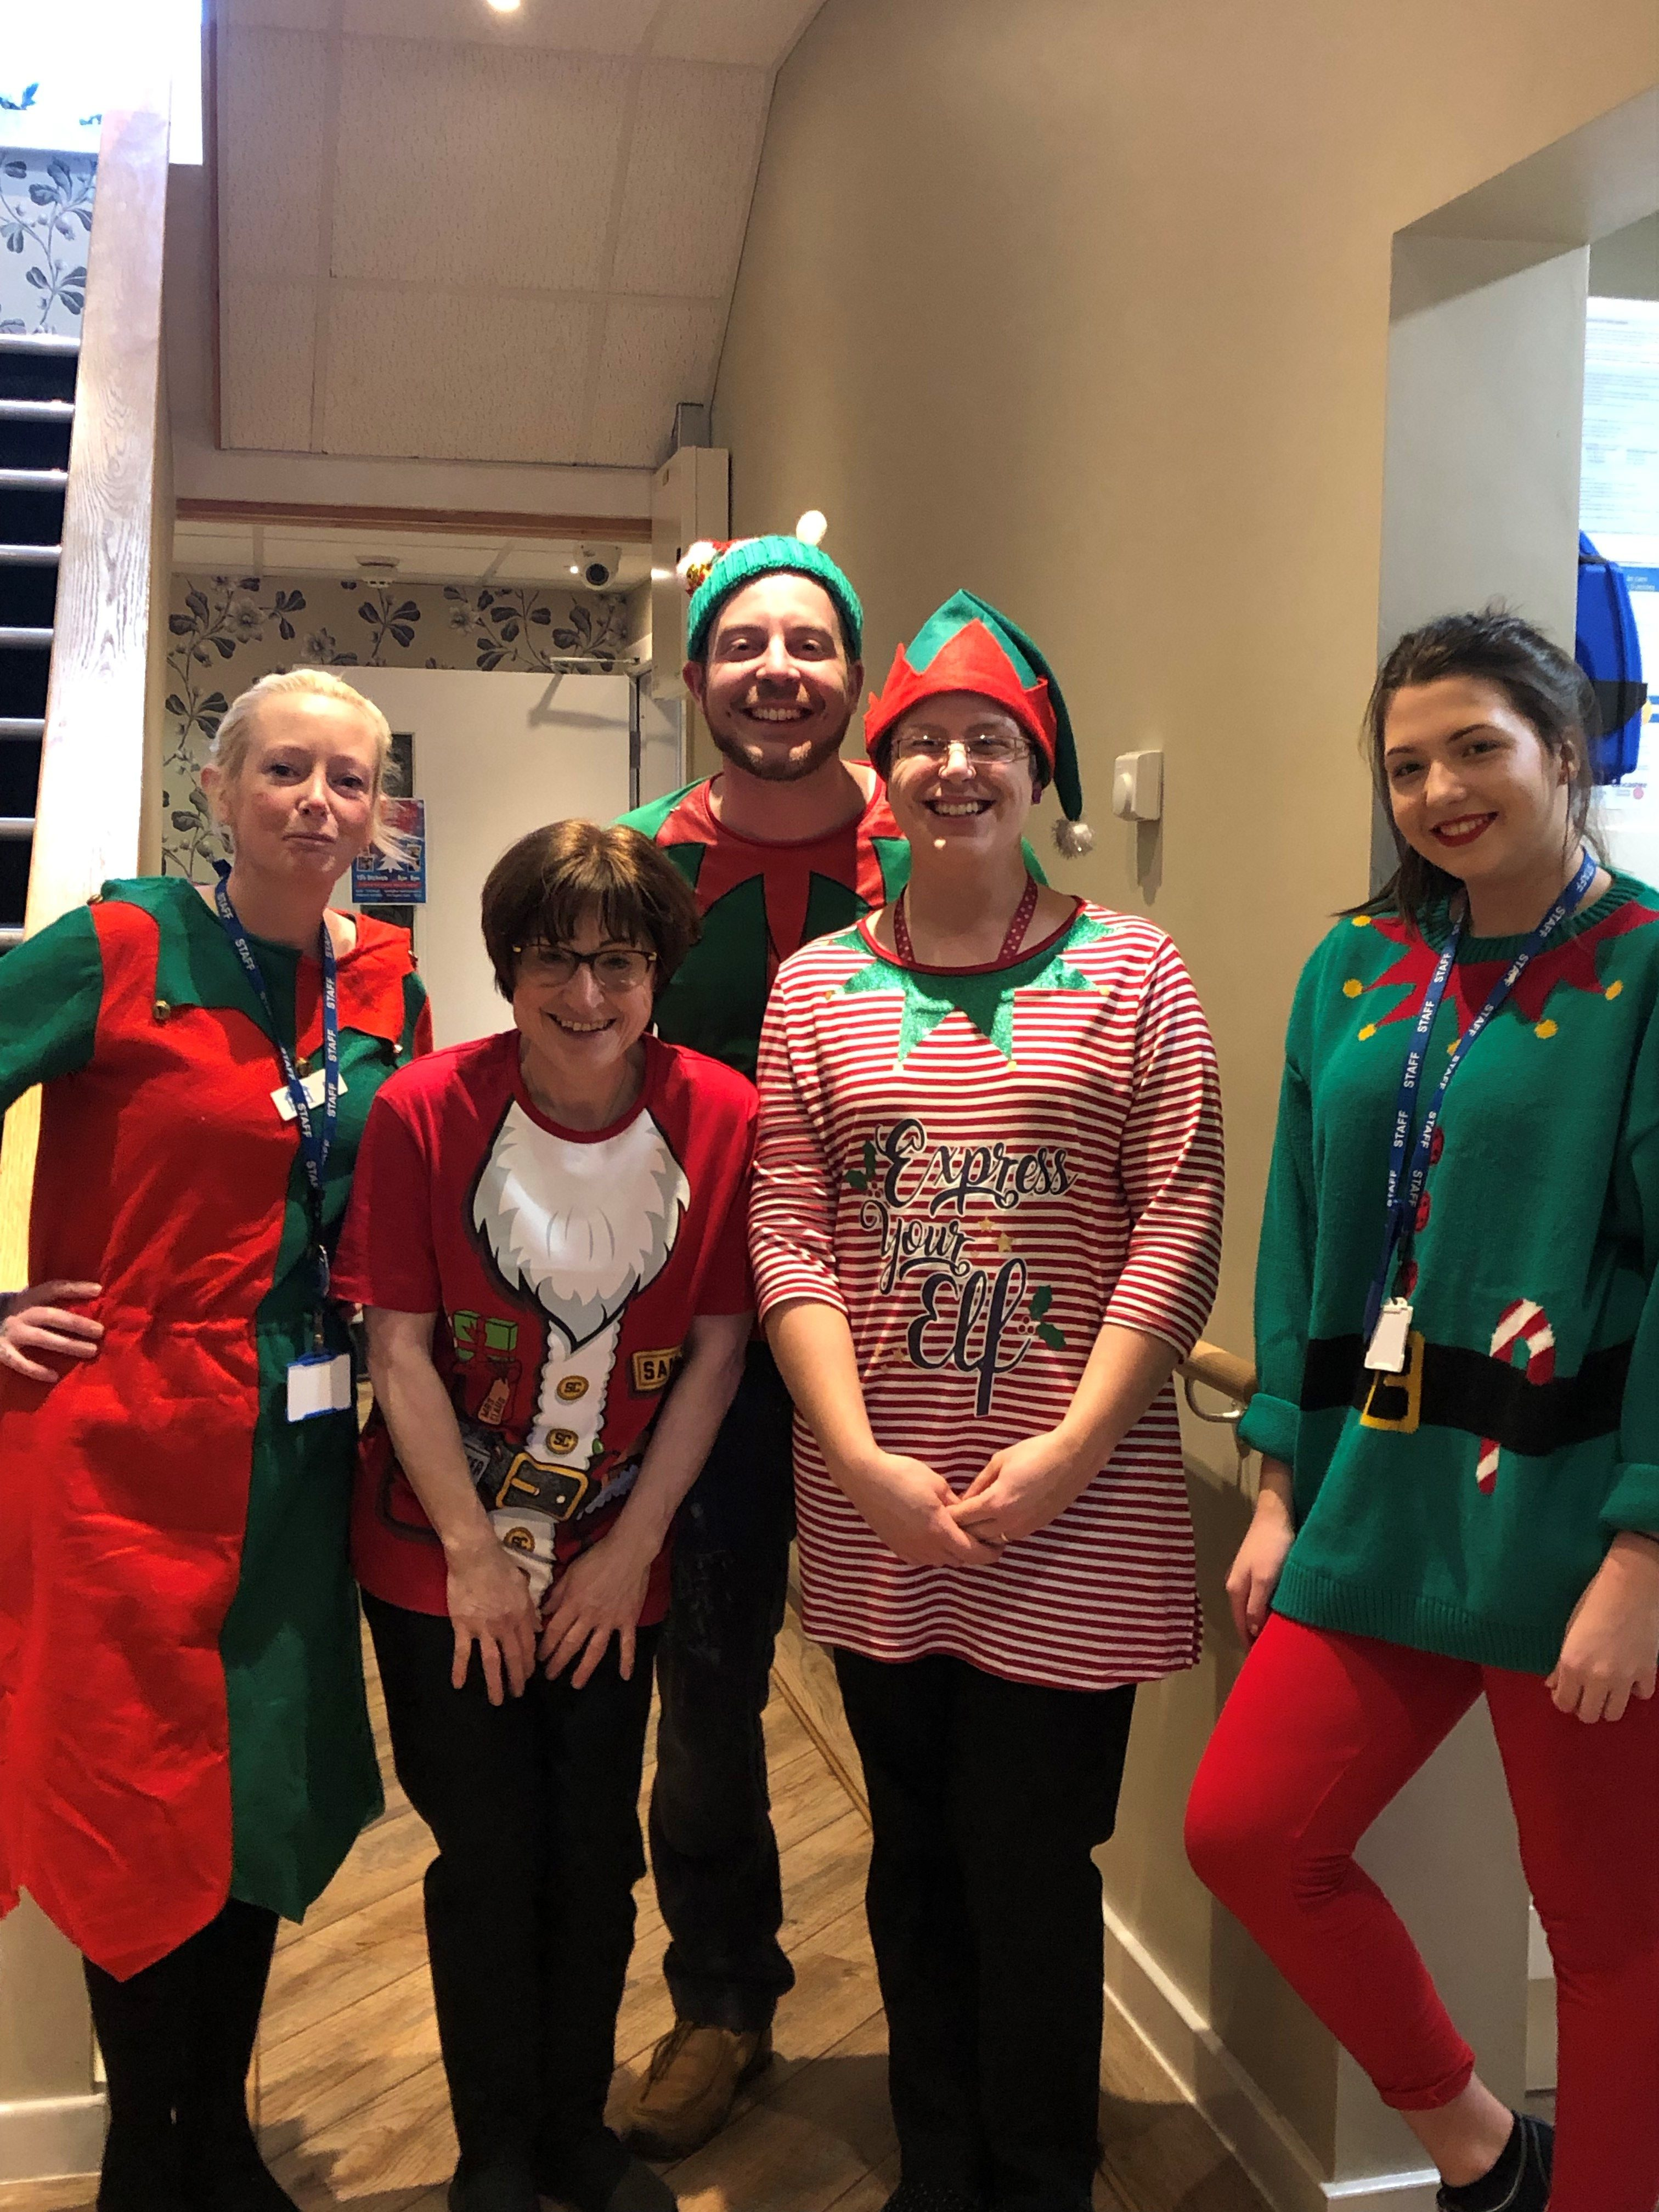 The staff dressed as Santa's little helpers.